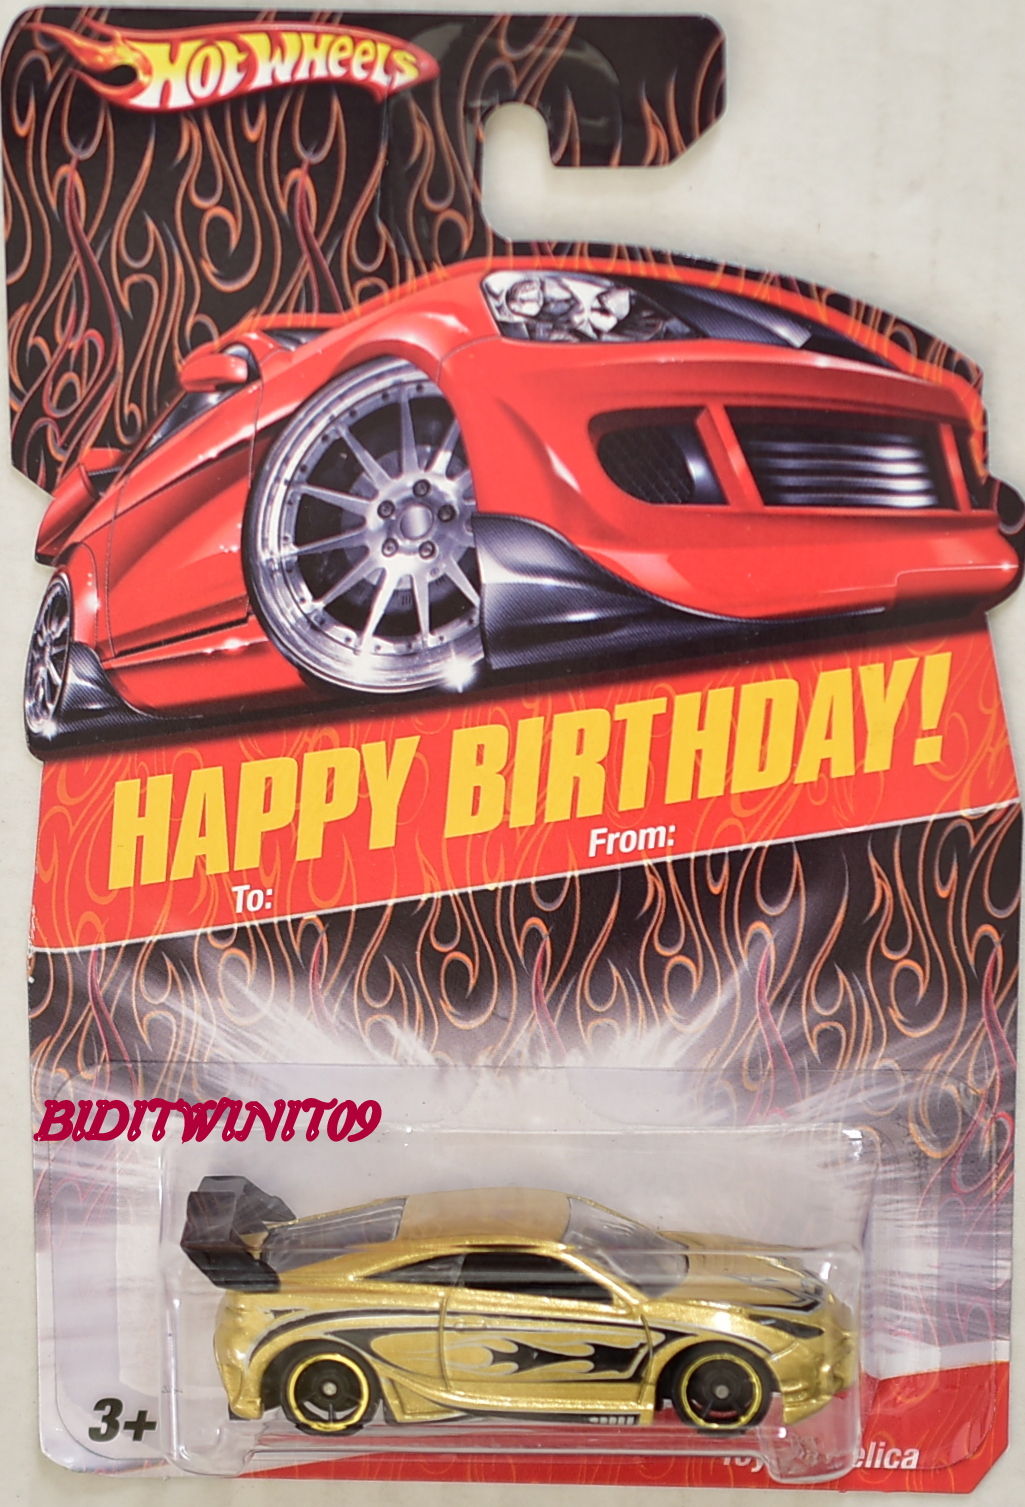 HOT WHEELS HAPPY BIRTHDAY TOYOTA CELICA GOLD